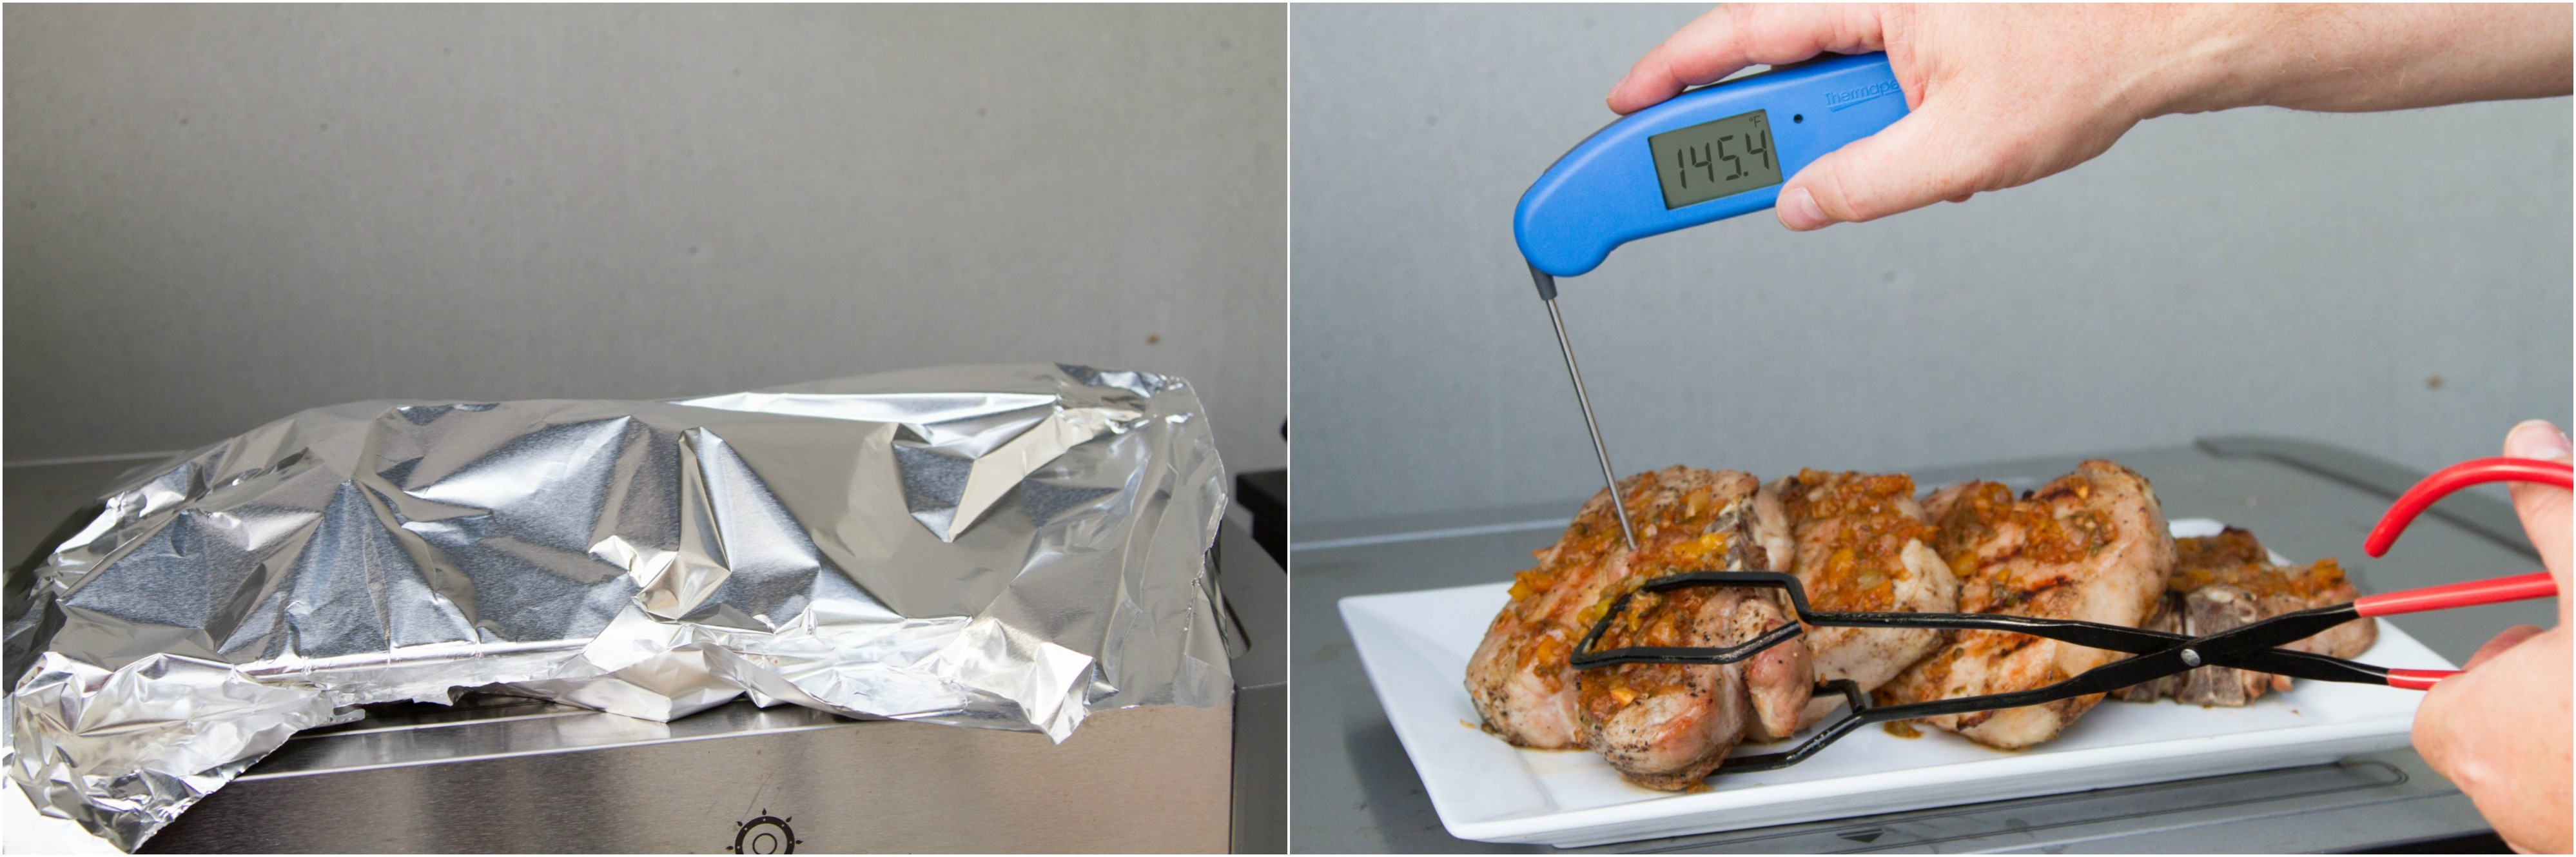 Resting grilled pork chops, verifying internal doneness temperature with a Thermapen Mk4